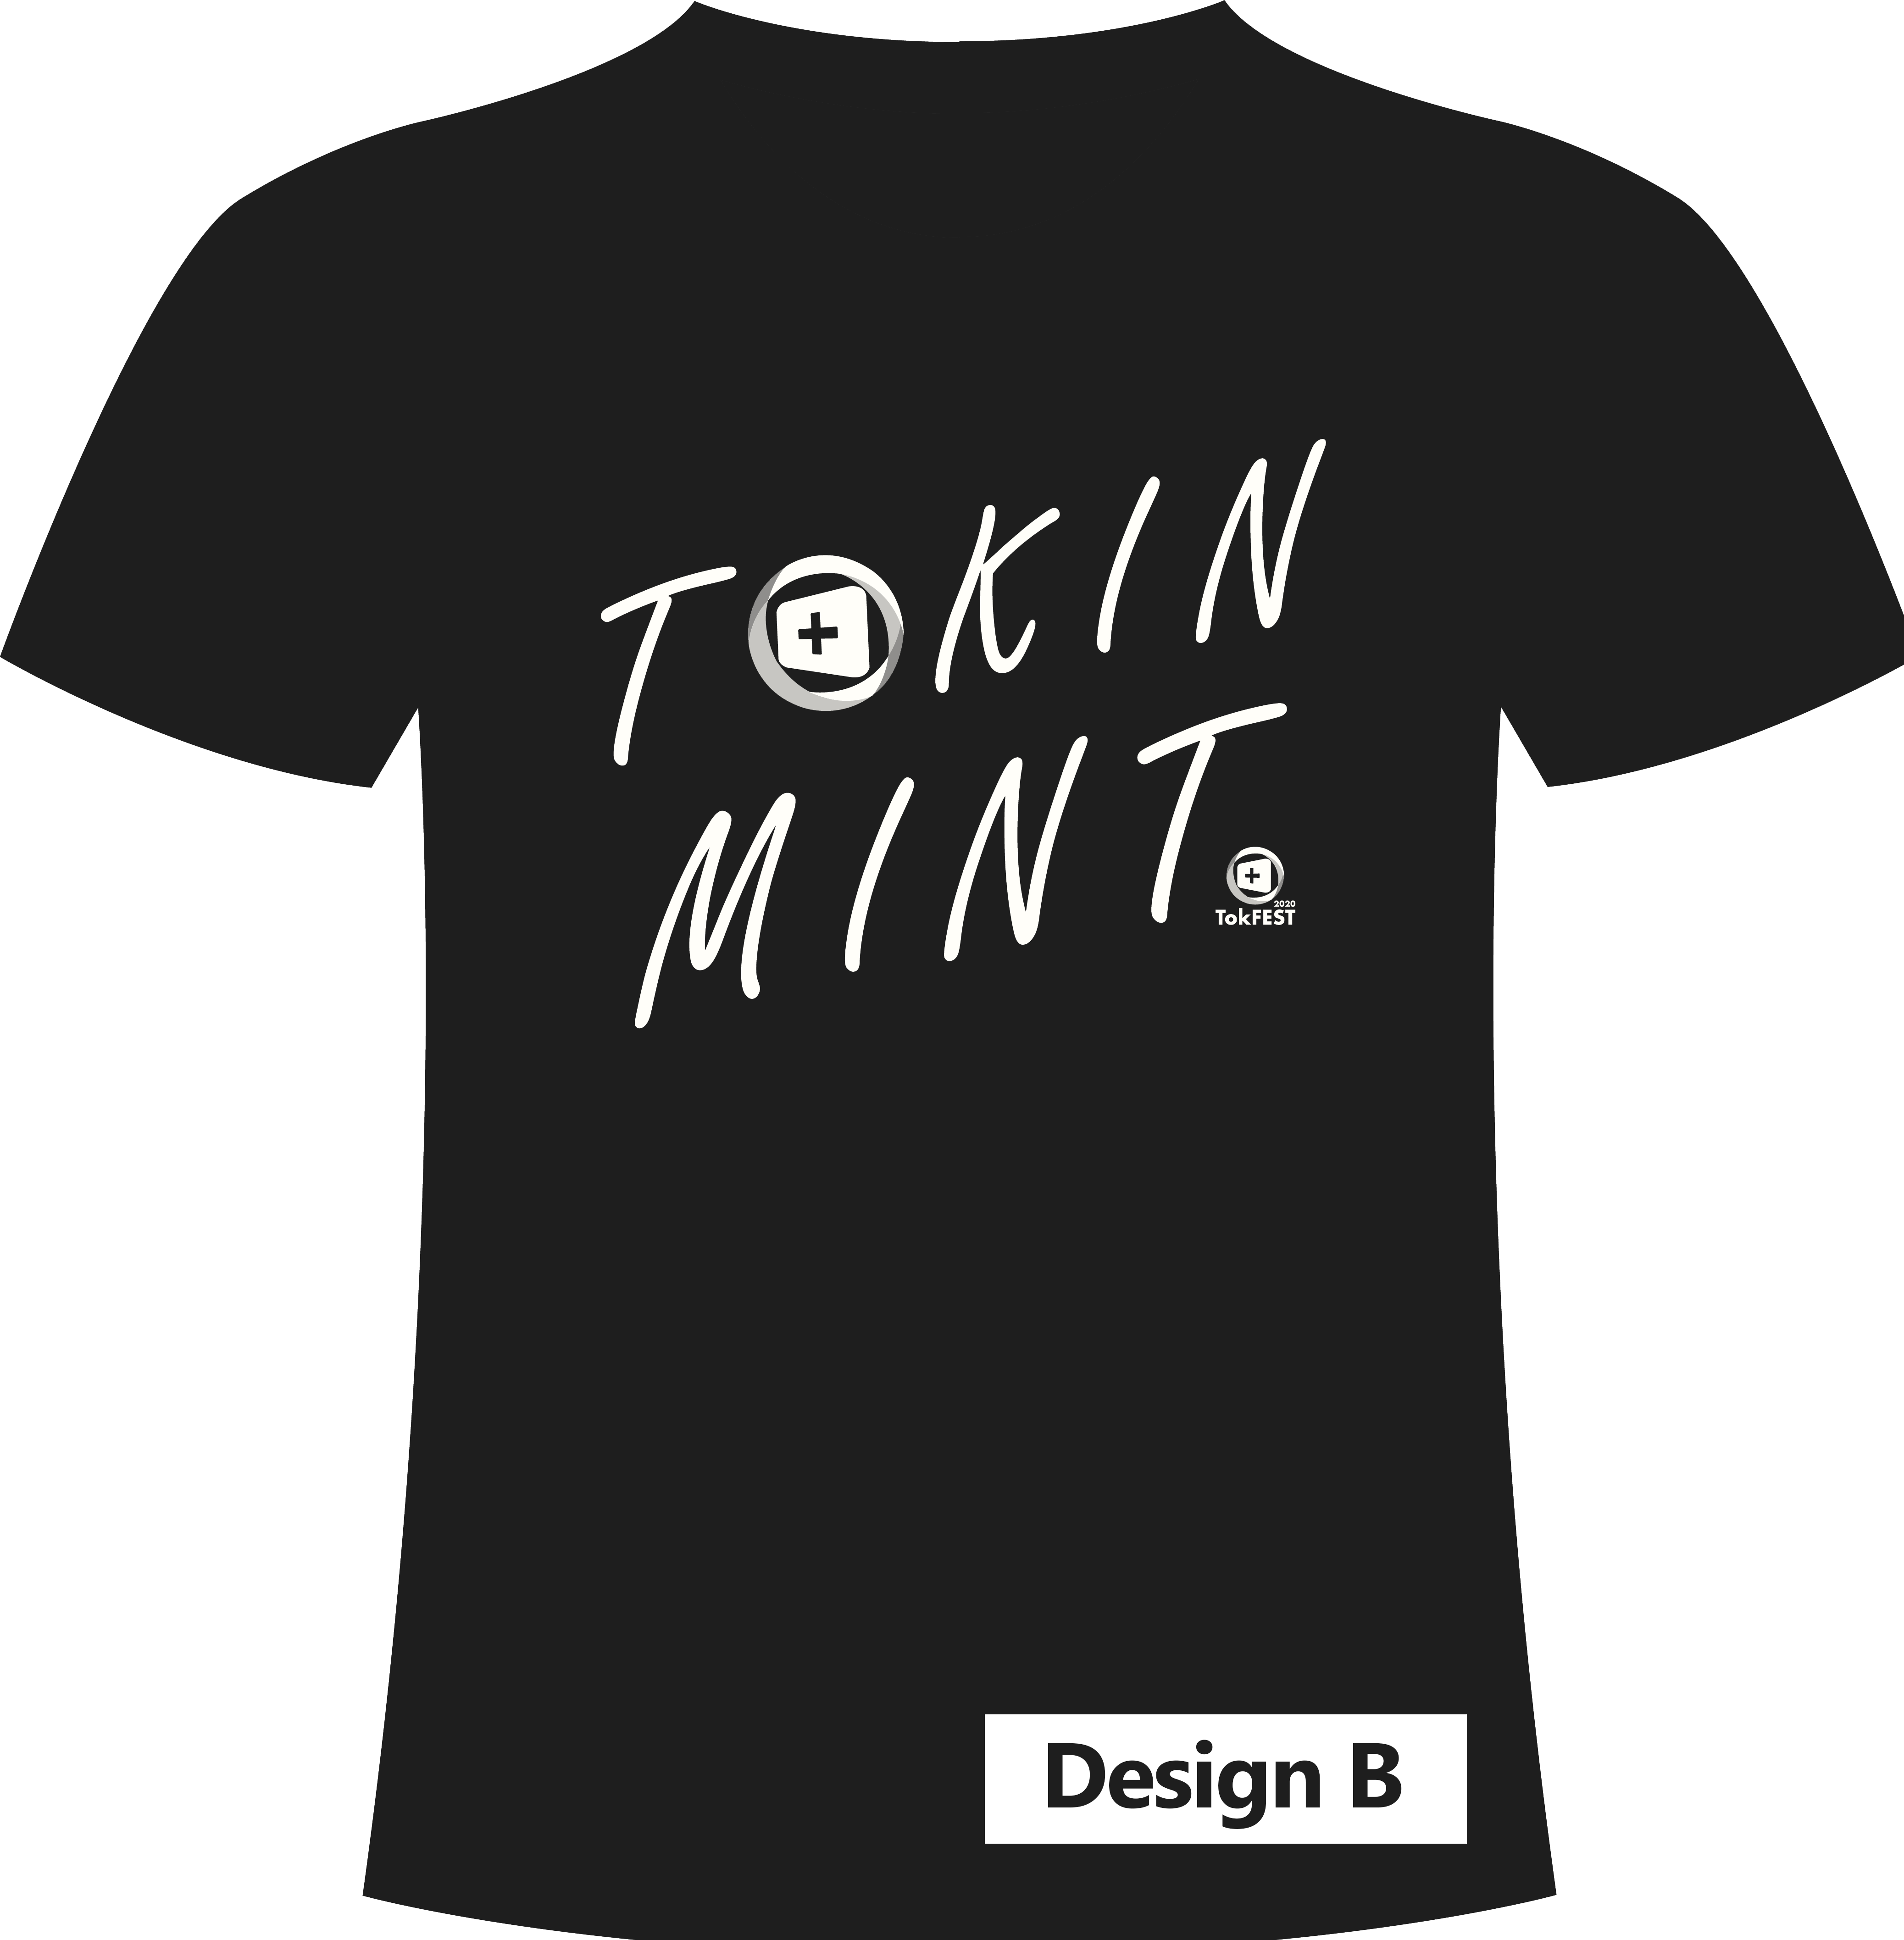 Official T-Shirt - Design B